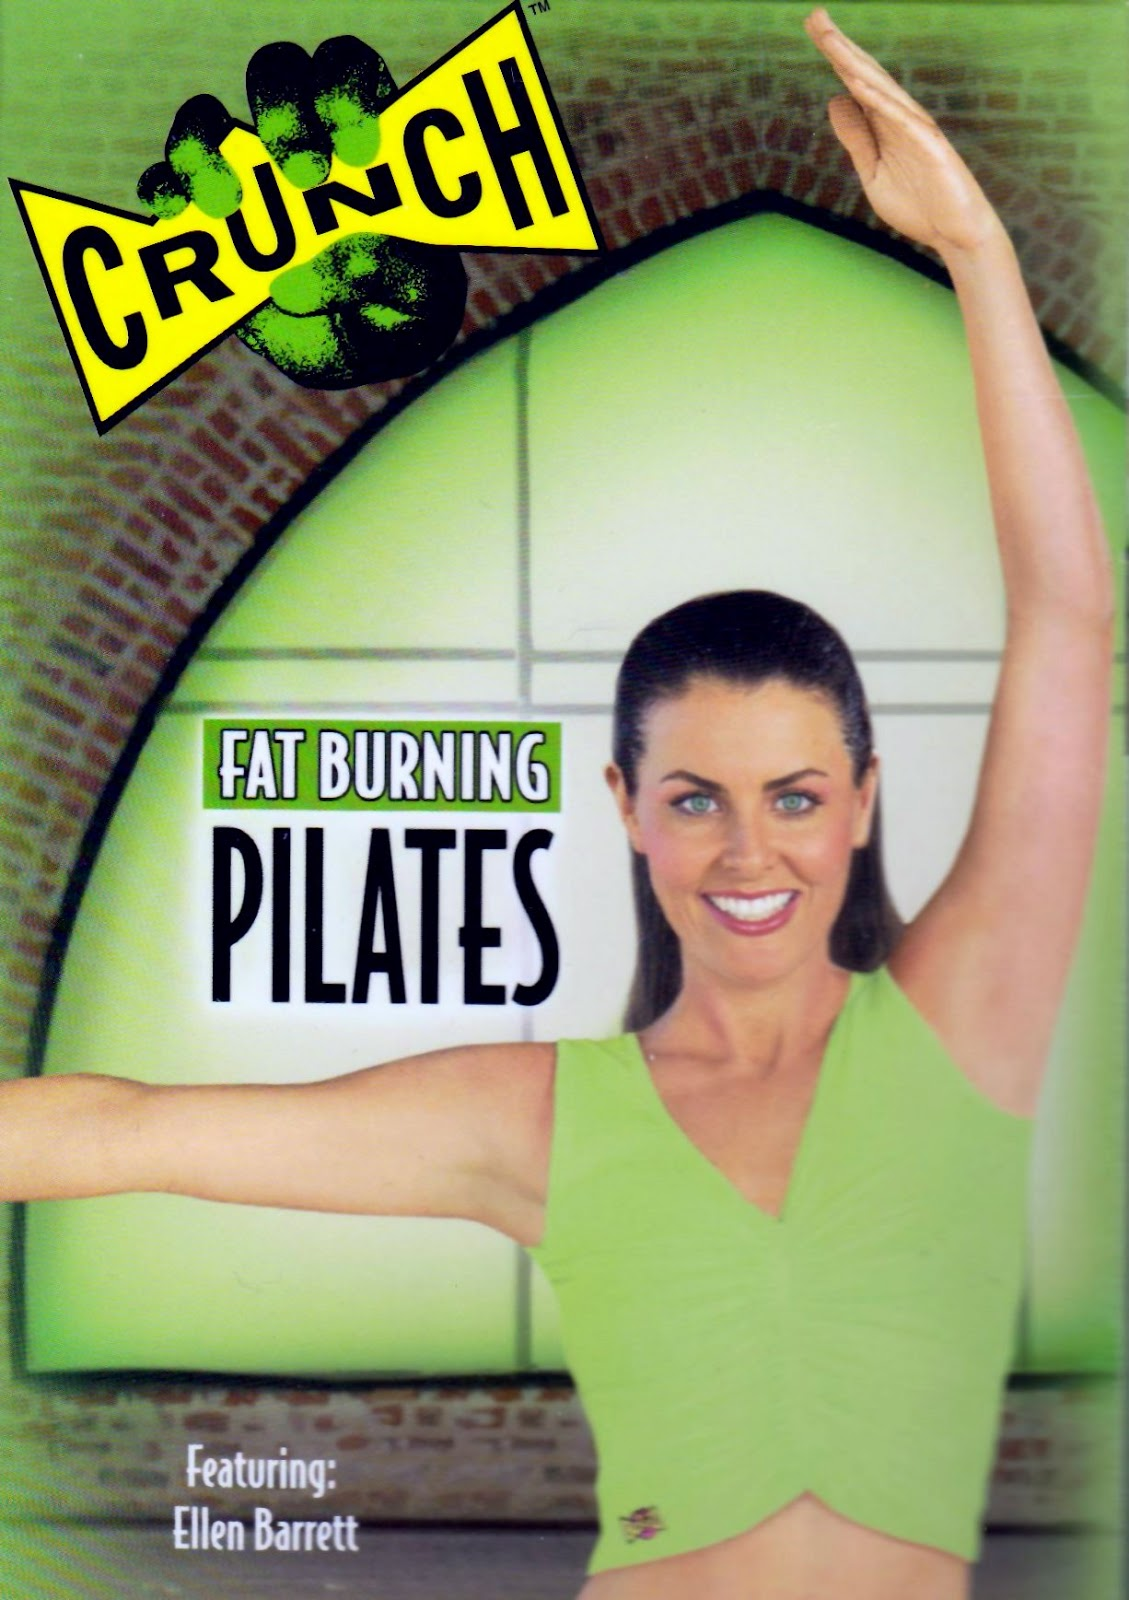 Crunch: Fat-Burning Pilates